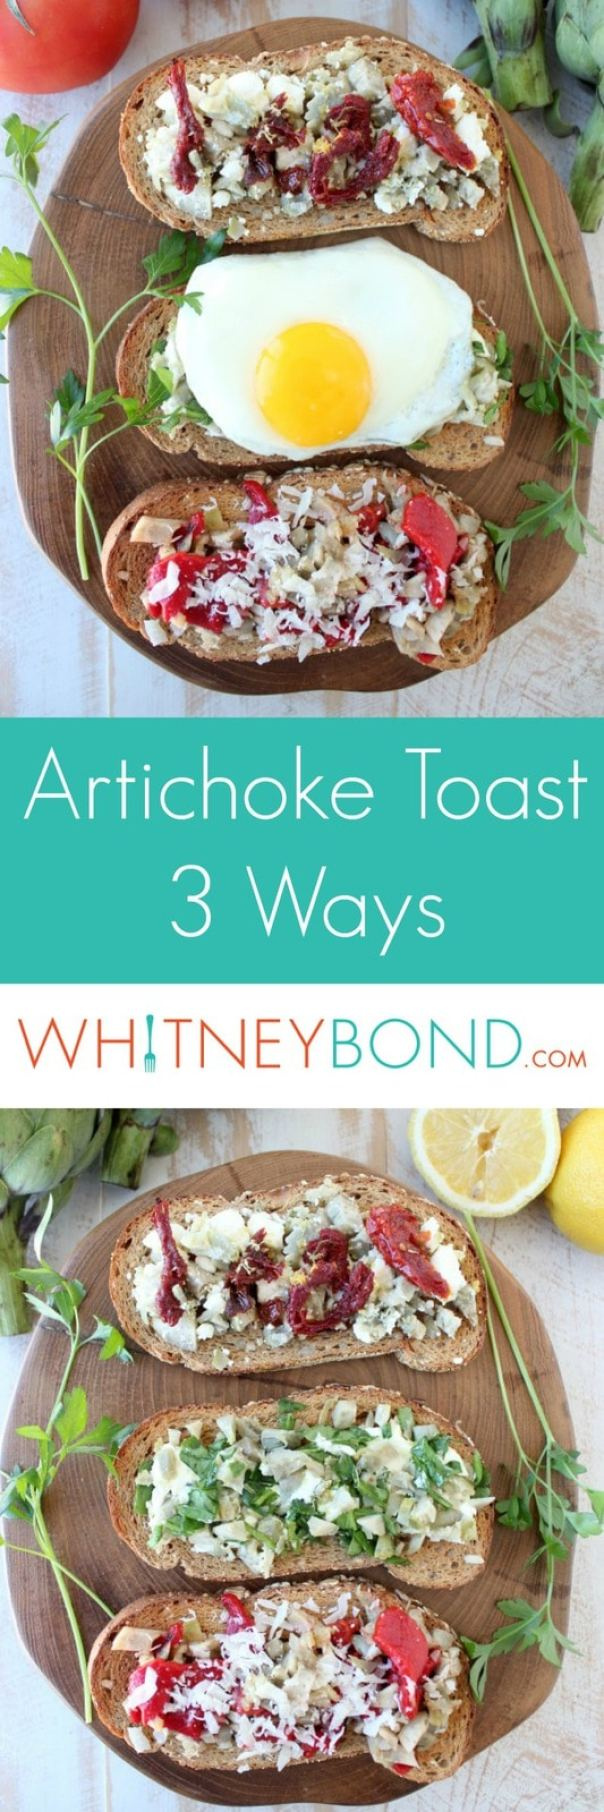 Artichoke Toast Recipe 3 Ways